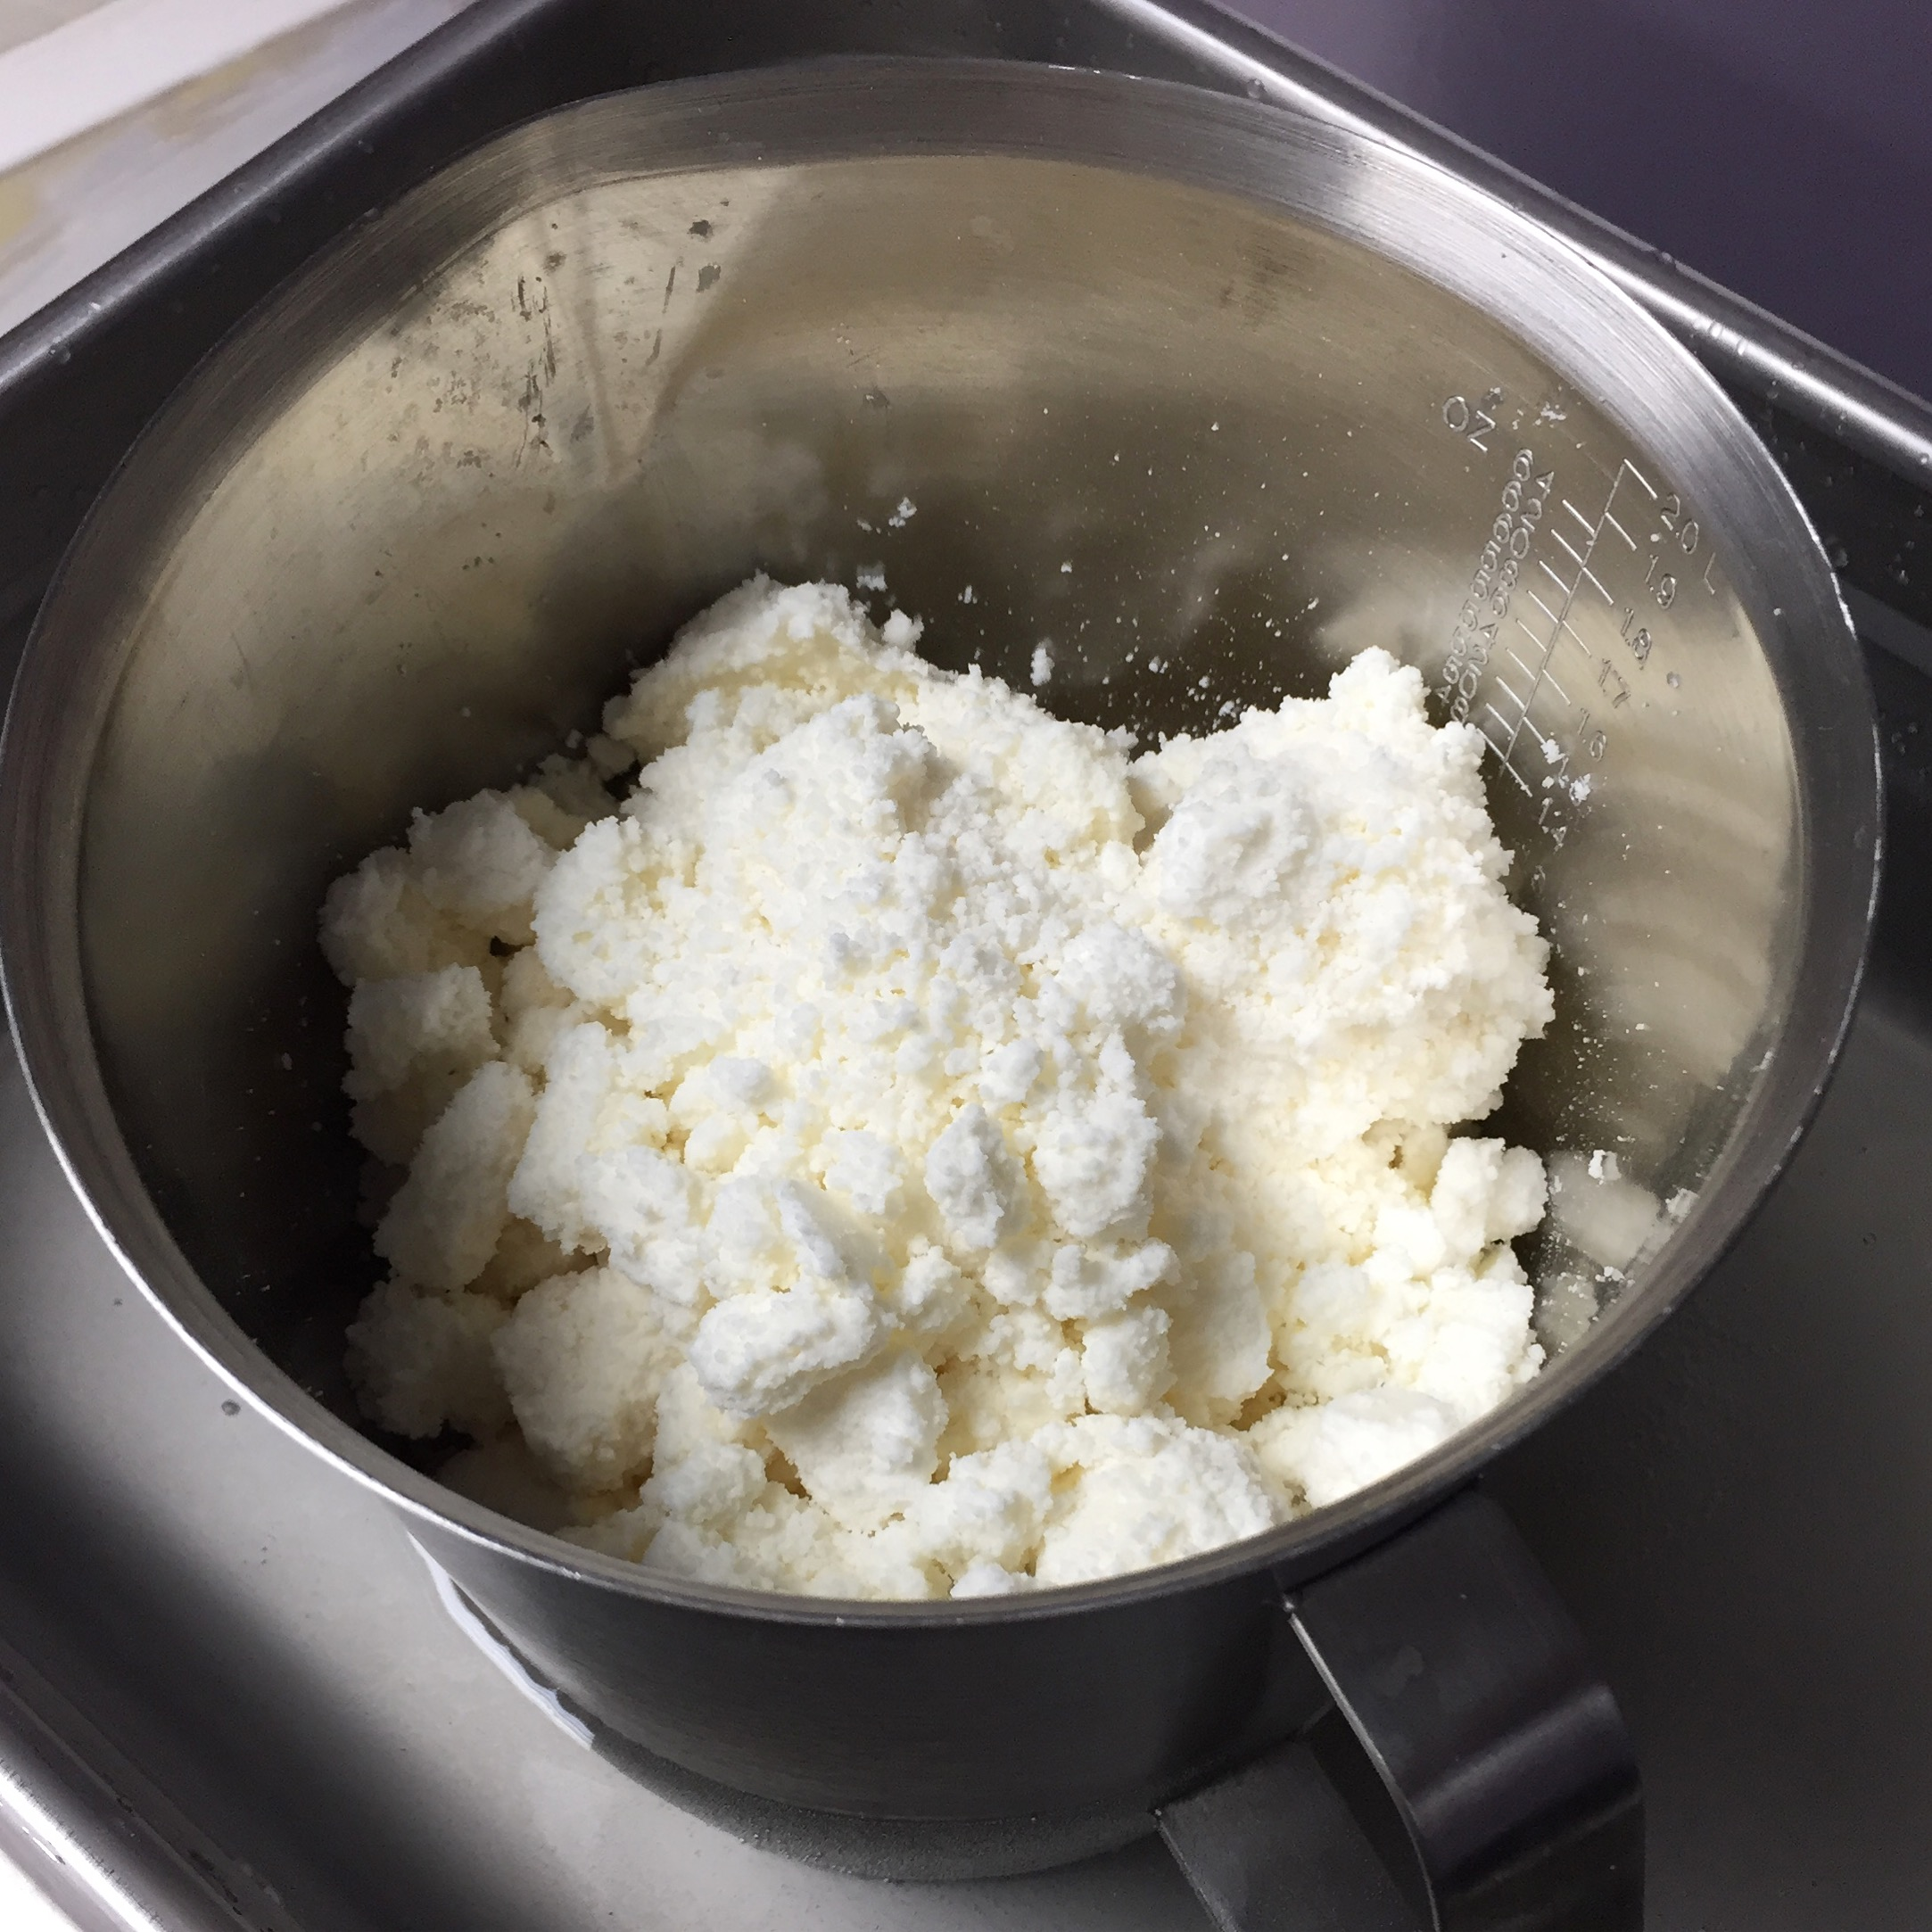 Butter being melted